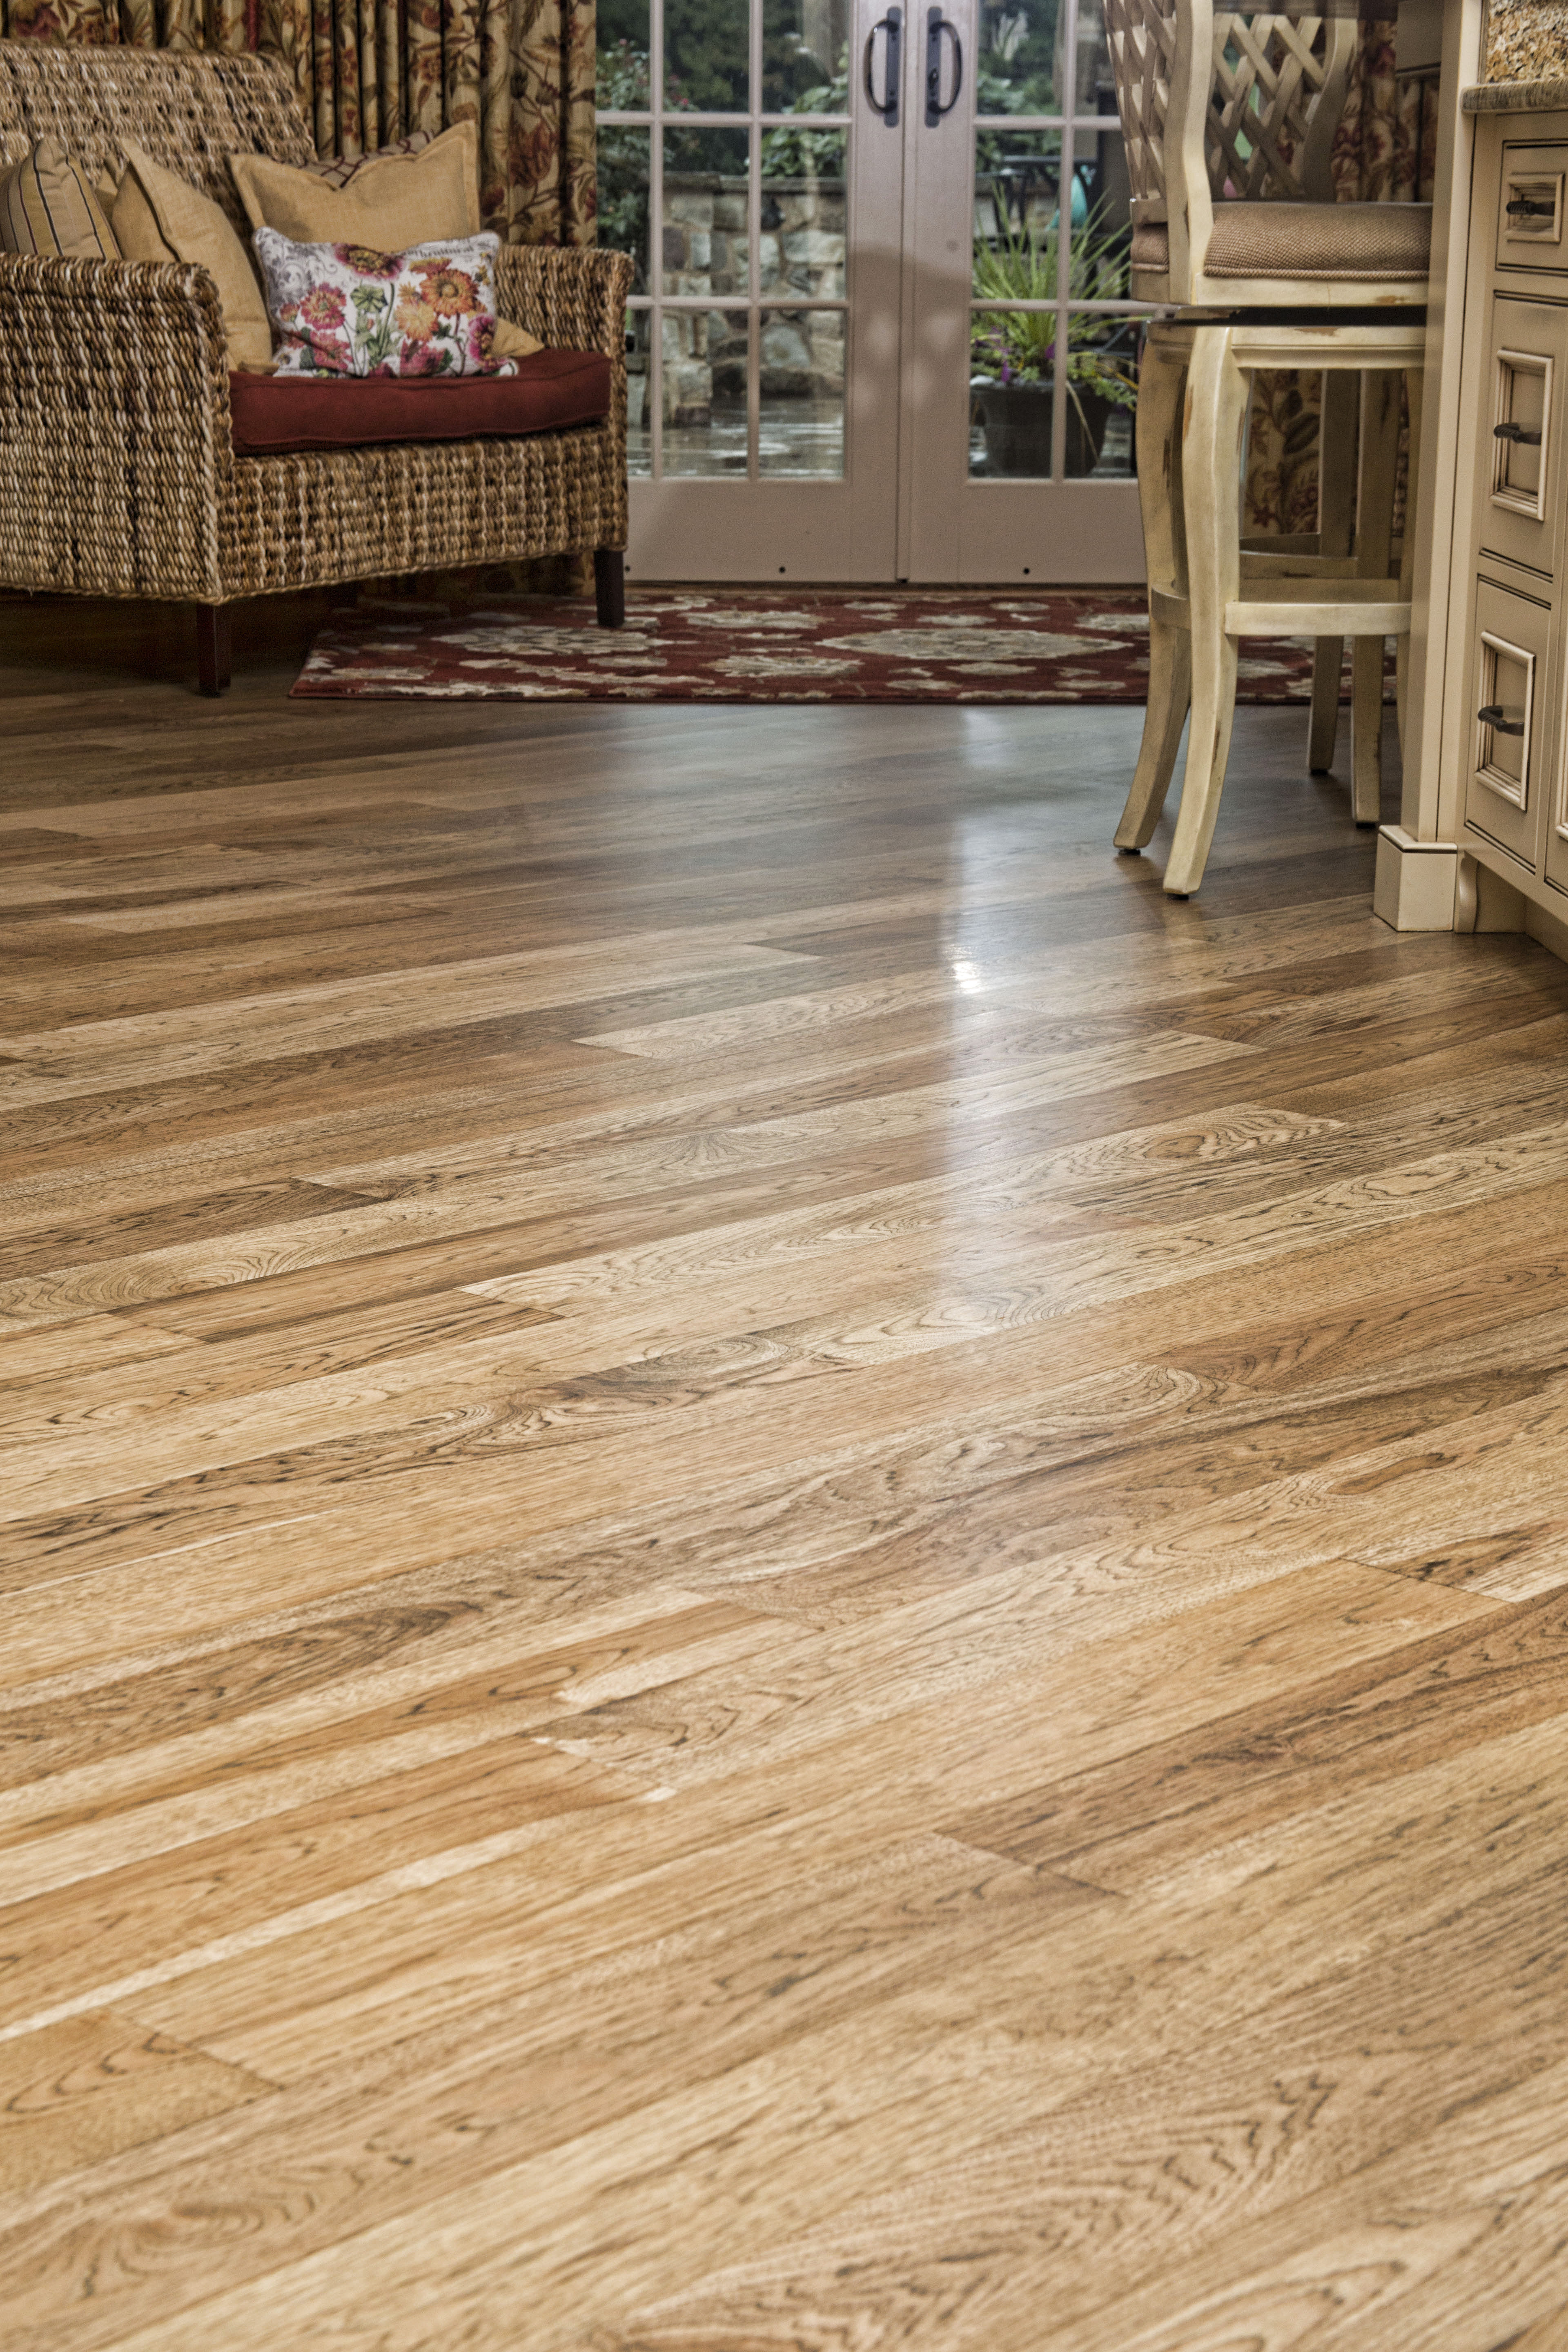 Hardwood flooring in hagerstown md transform your home today add classic and timeless beauty to your home with the addition of new hardwood flooring at our local store and showroom we offer a wide range of wood dailygadgetfo Choice Image